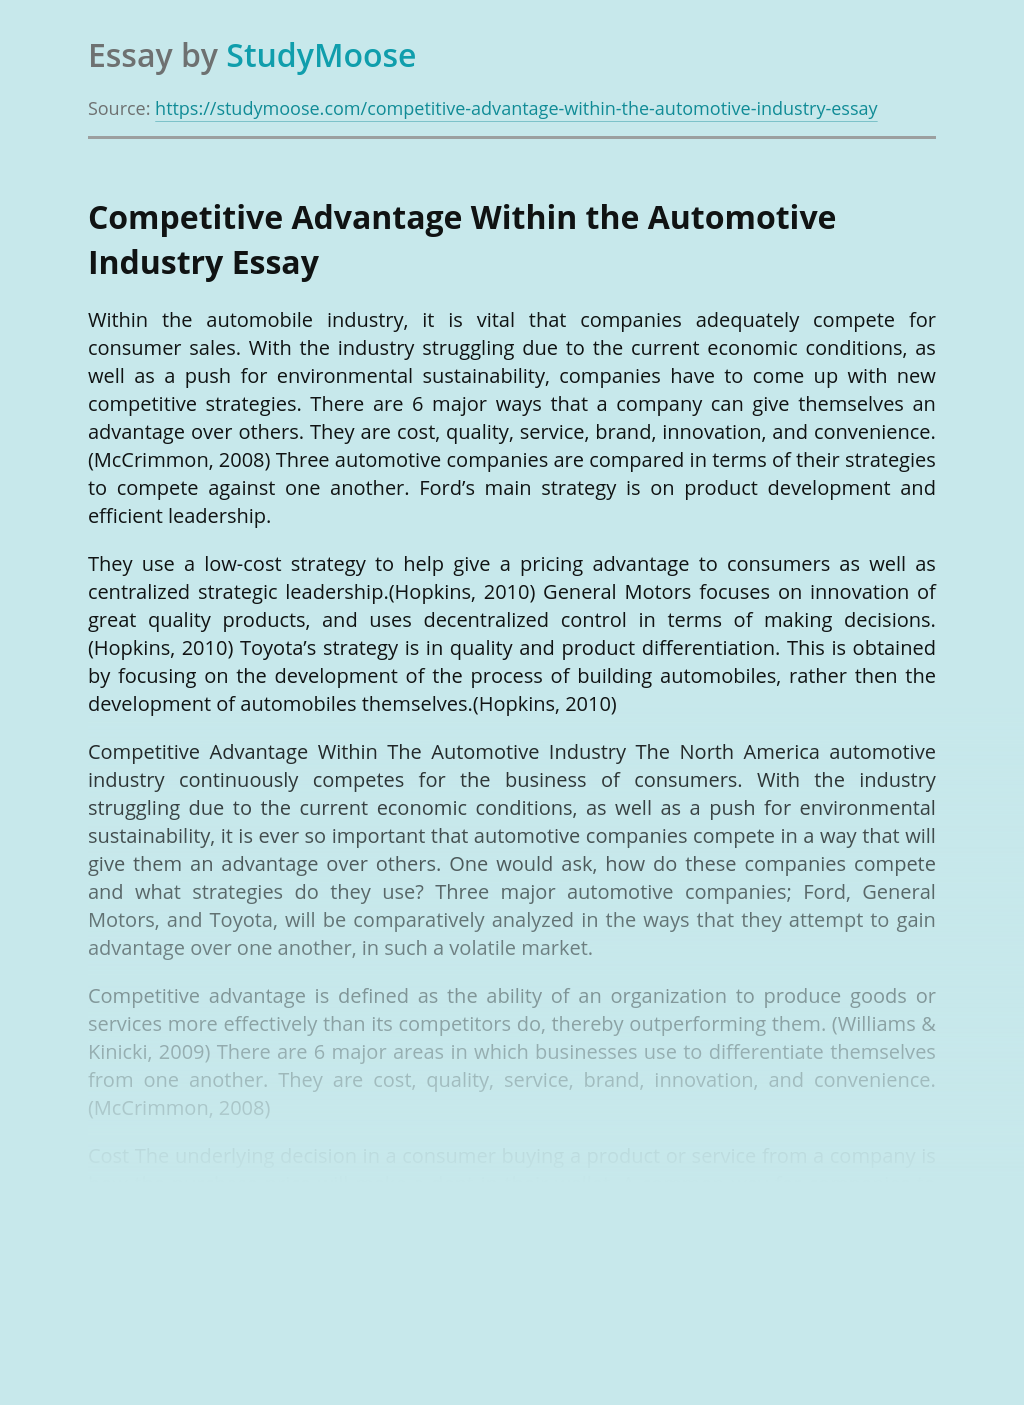 Competitive Advantage Within the Automotive Industry